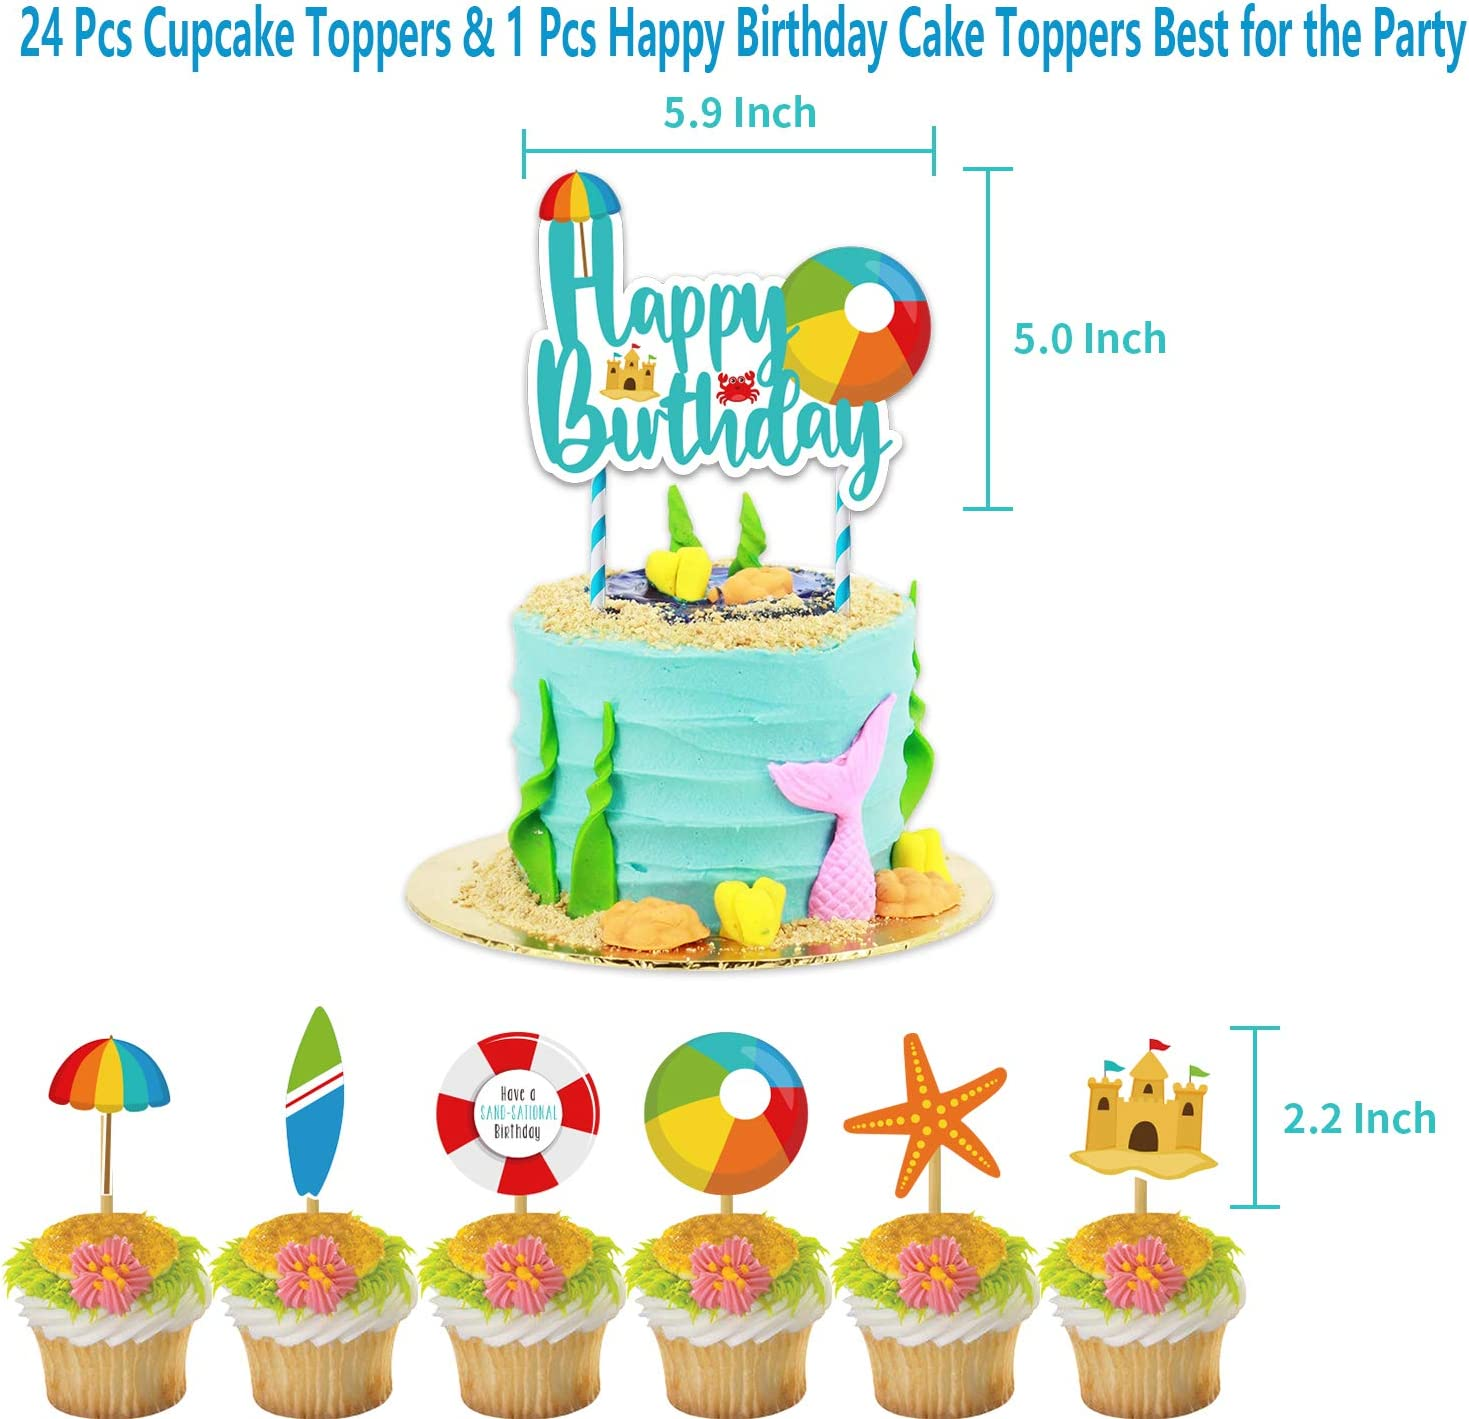 Cake Topper 20pcs Inflatable Beach Balloons for Summer Colorful Beach Pool Themed Kids Birthday Party Decorations 24pcs Cupcake Topper 47 Pcs Beach Ball Birthday Party Decoration Supplies with Pre-strung Banners